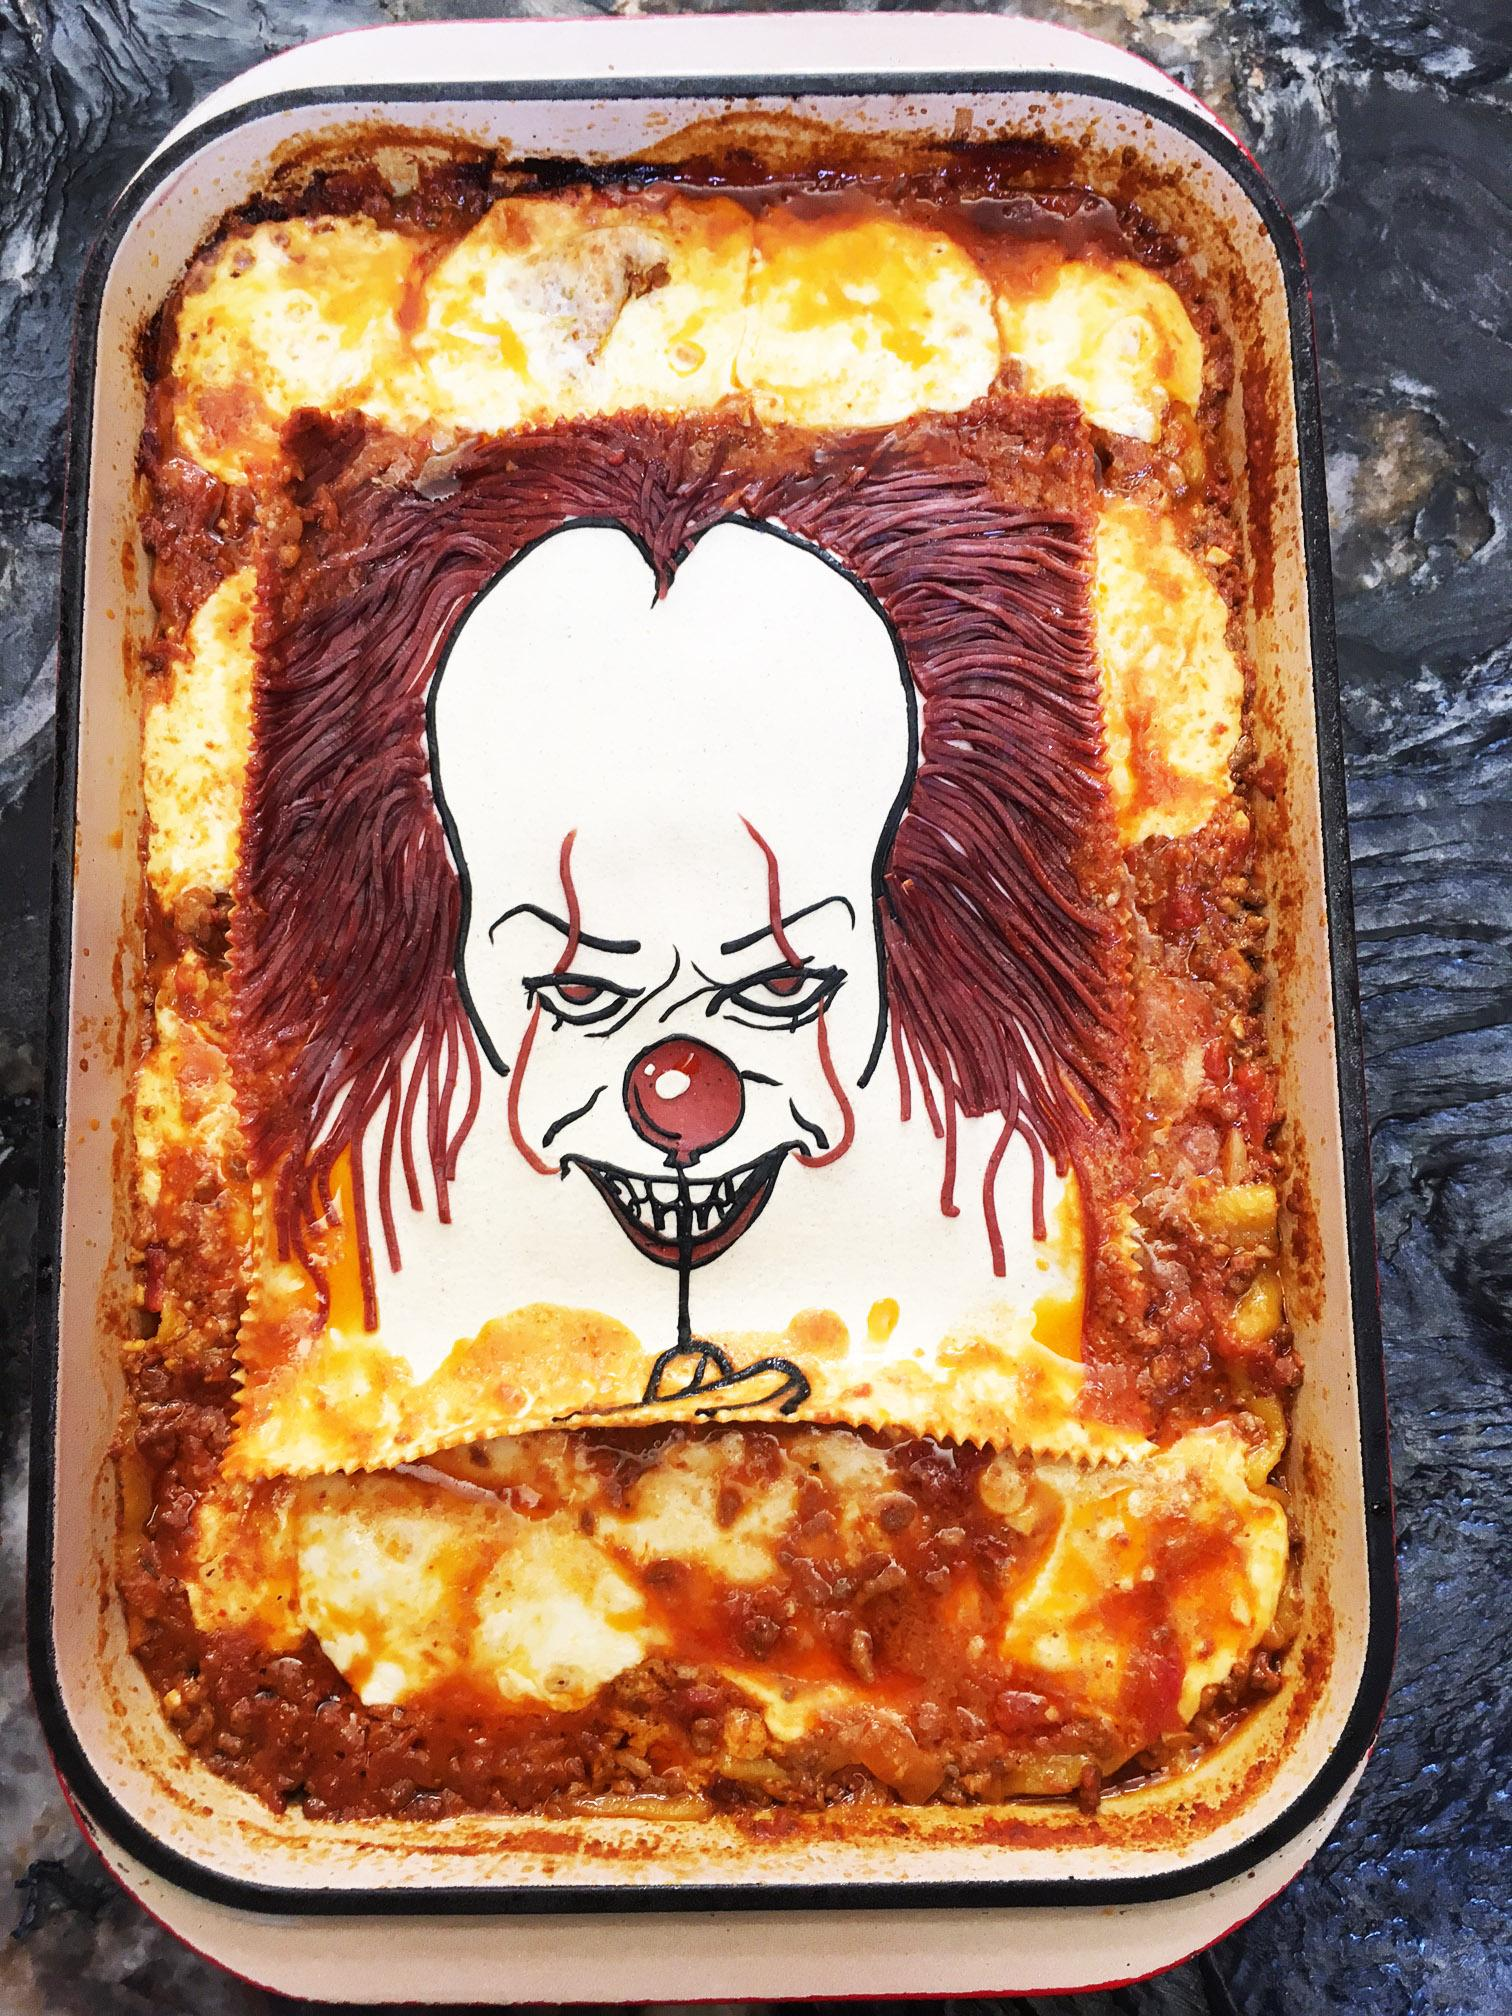 After baking...Sorry in advance for the nightmares. (Image: Seattle Refined)